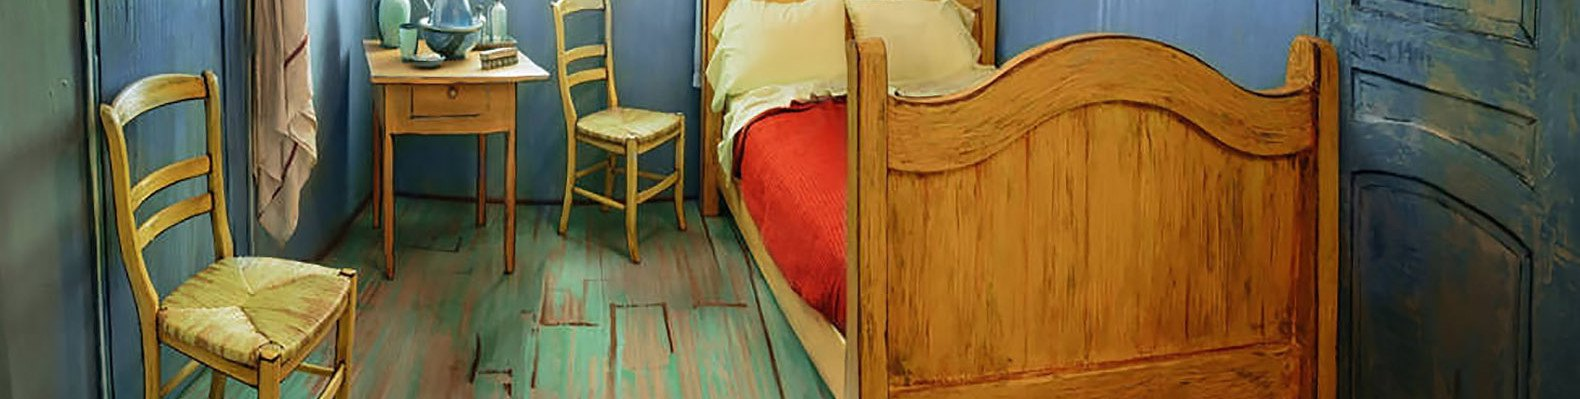 Life Sized Replica Of Van Gogh S The Bedroom To Rent On Airbnb For